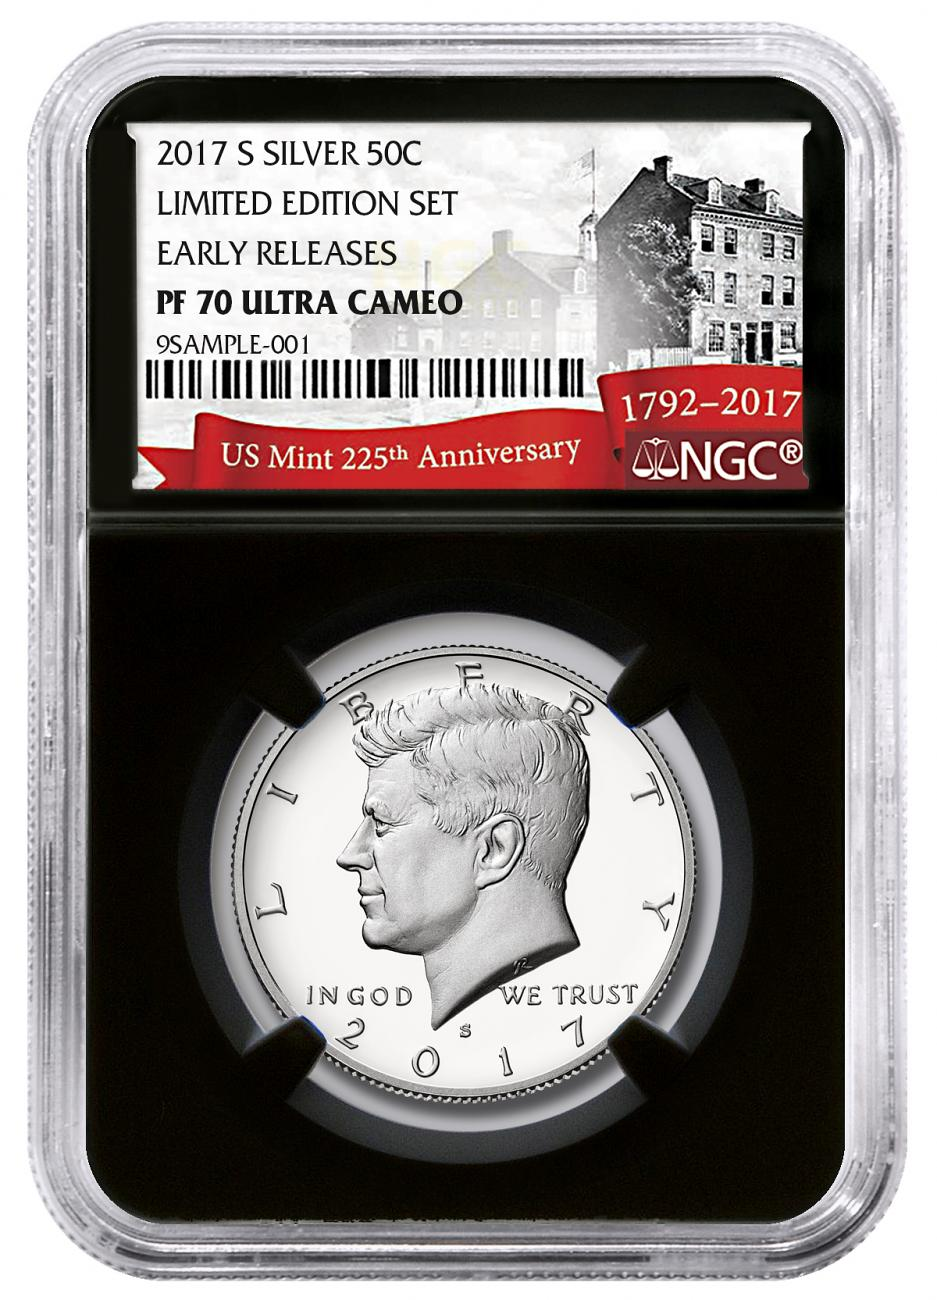 2017-S Silver Proof Kennedy Half Dollar From Limited Edition Silver Proof Set NGC PF70 UC ER Black Core Holder Exclusive U.S. Mint 225th Anniversary Label